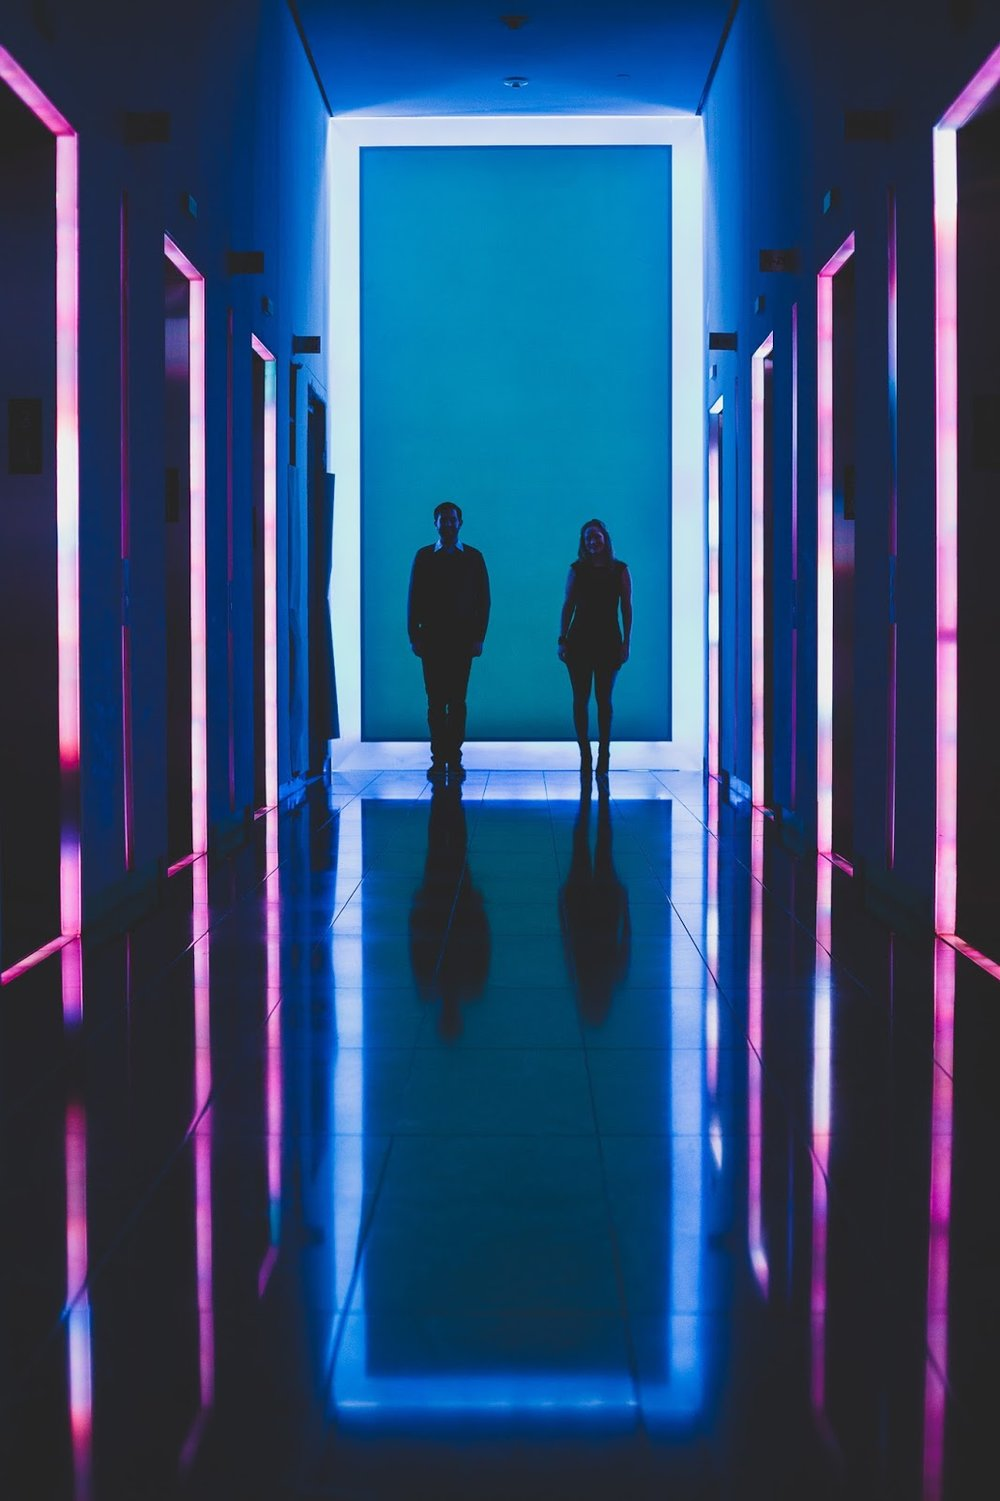 NYC engagement photos in front of art installation by James Turrell | blog.cassiecastellaw.com